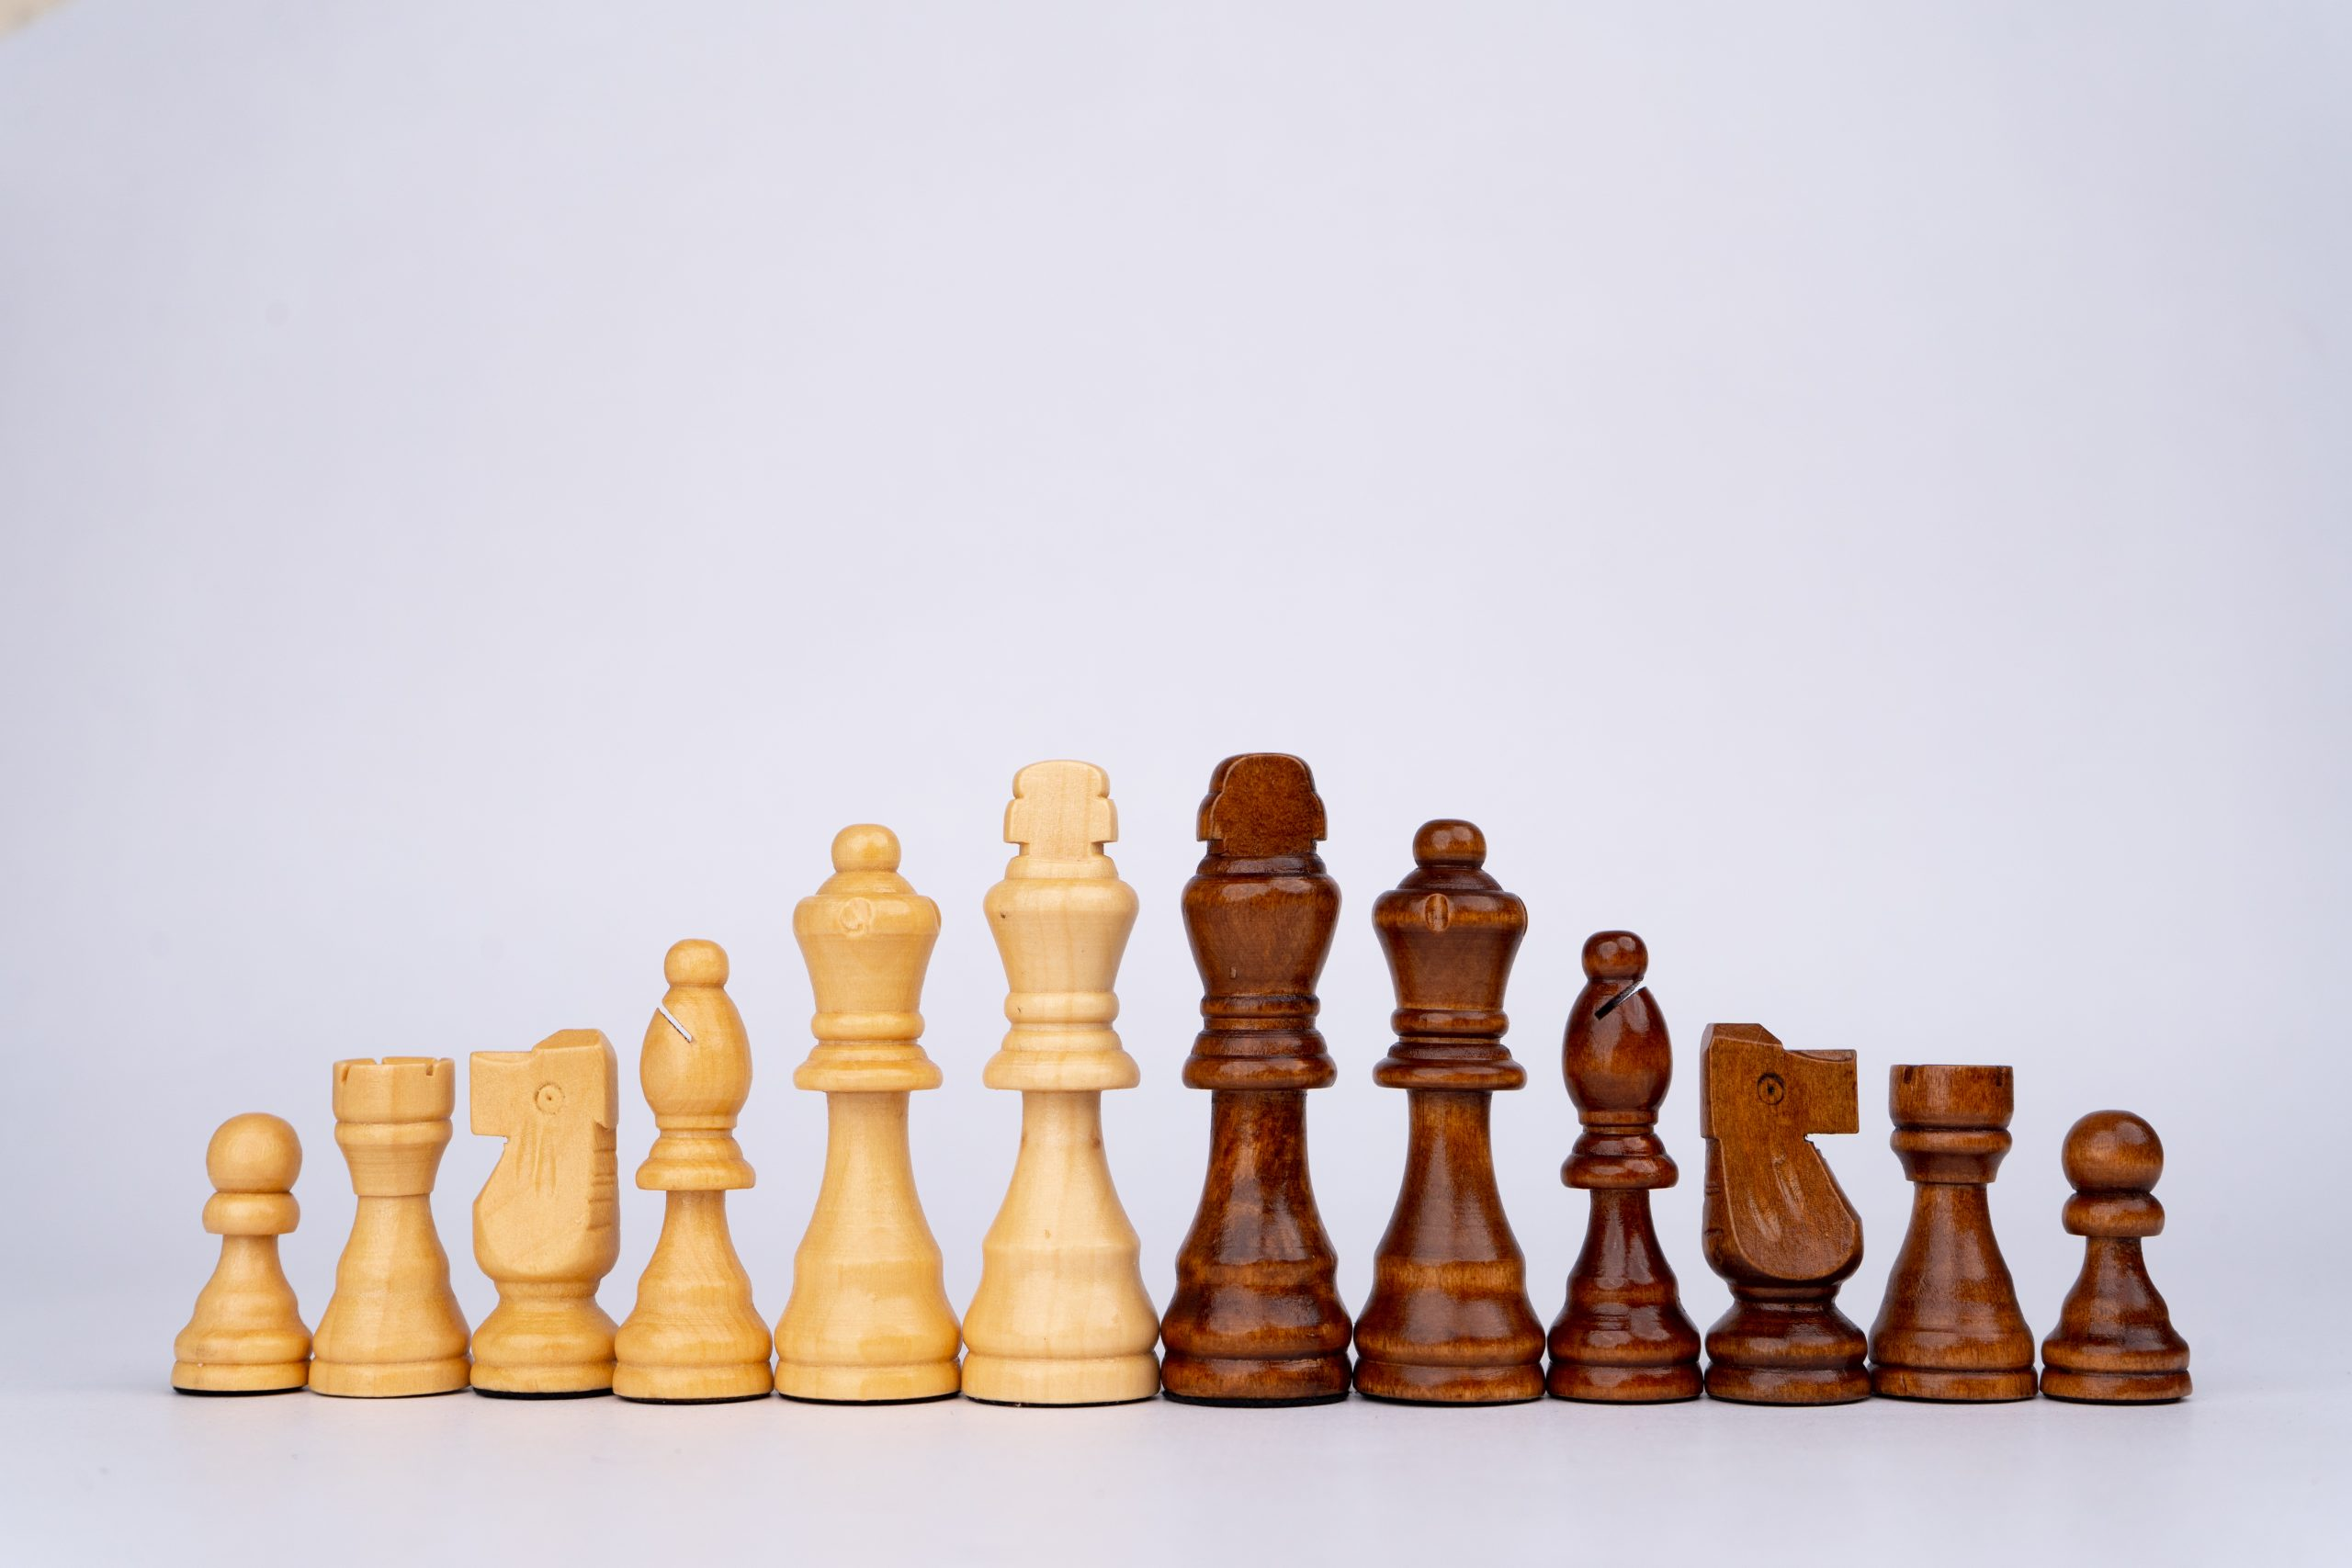 Chess pieces in order